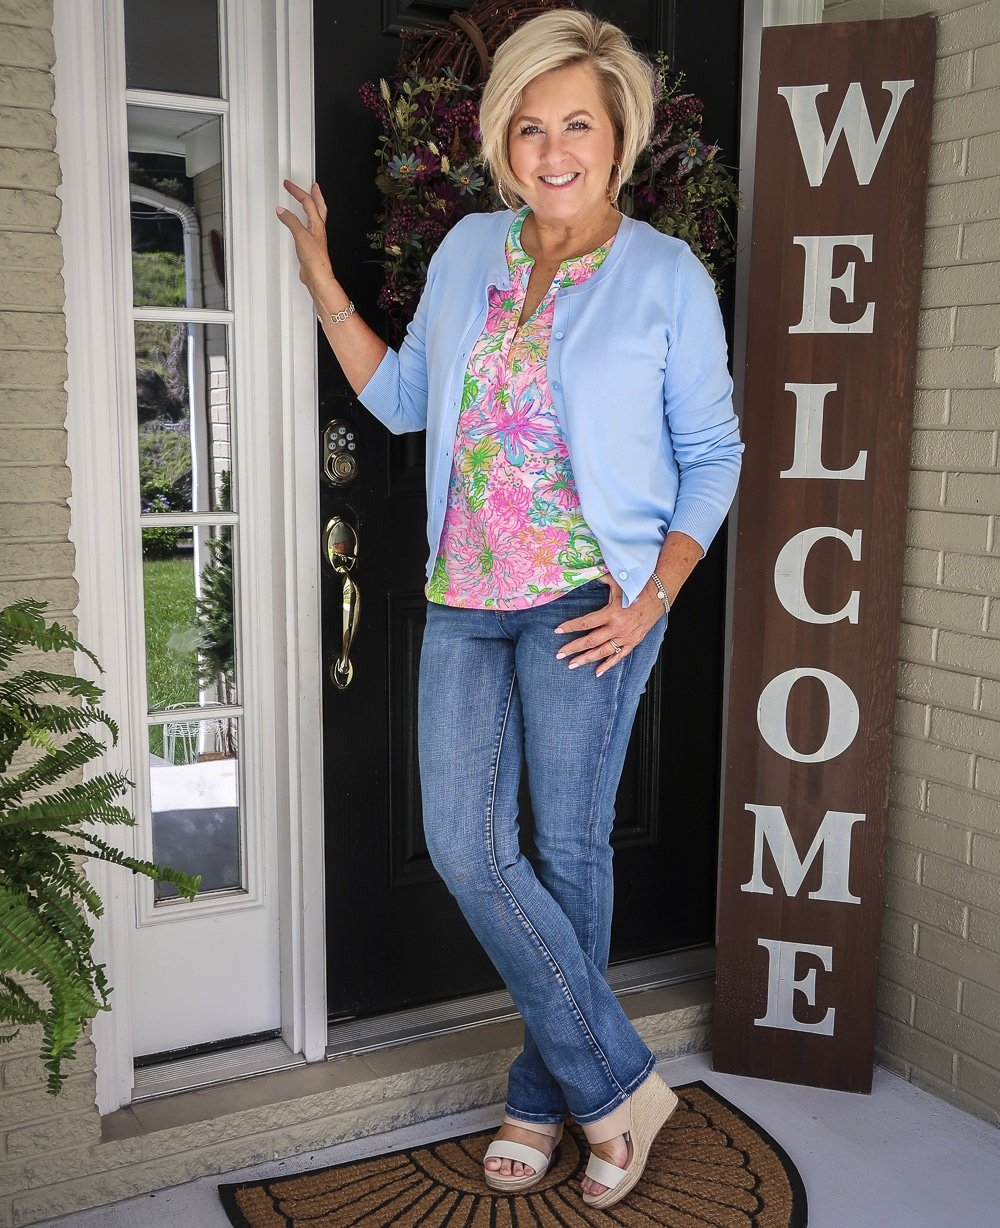 Fashion Blogger 50 Is Not Old is wearing a blue cardigan and a Lilly Pulitzer top with bootcut jeans